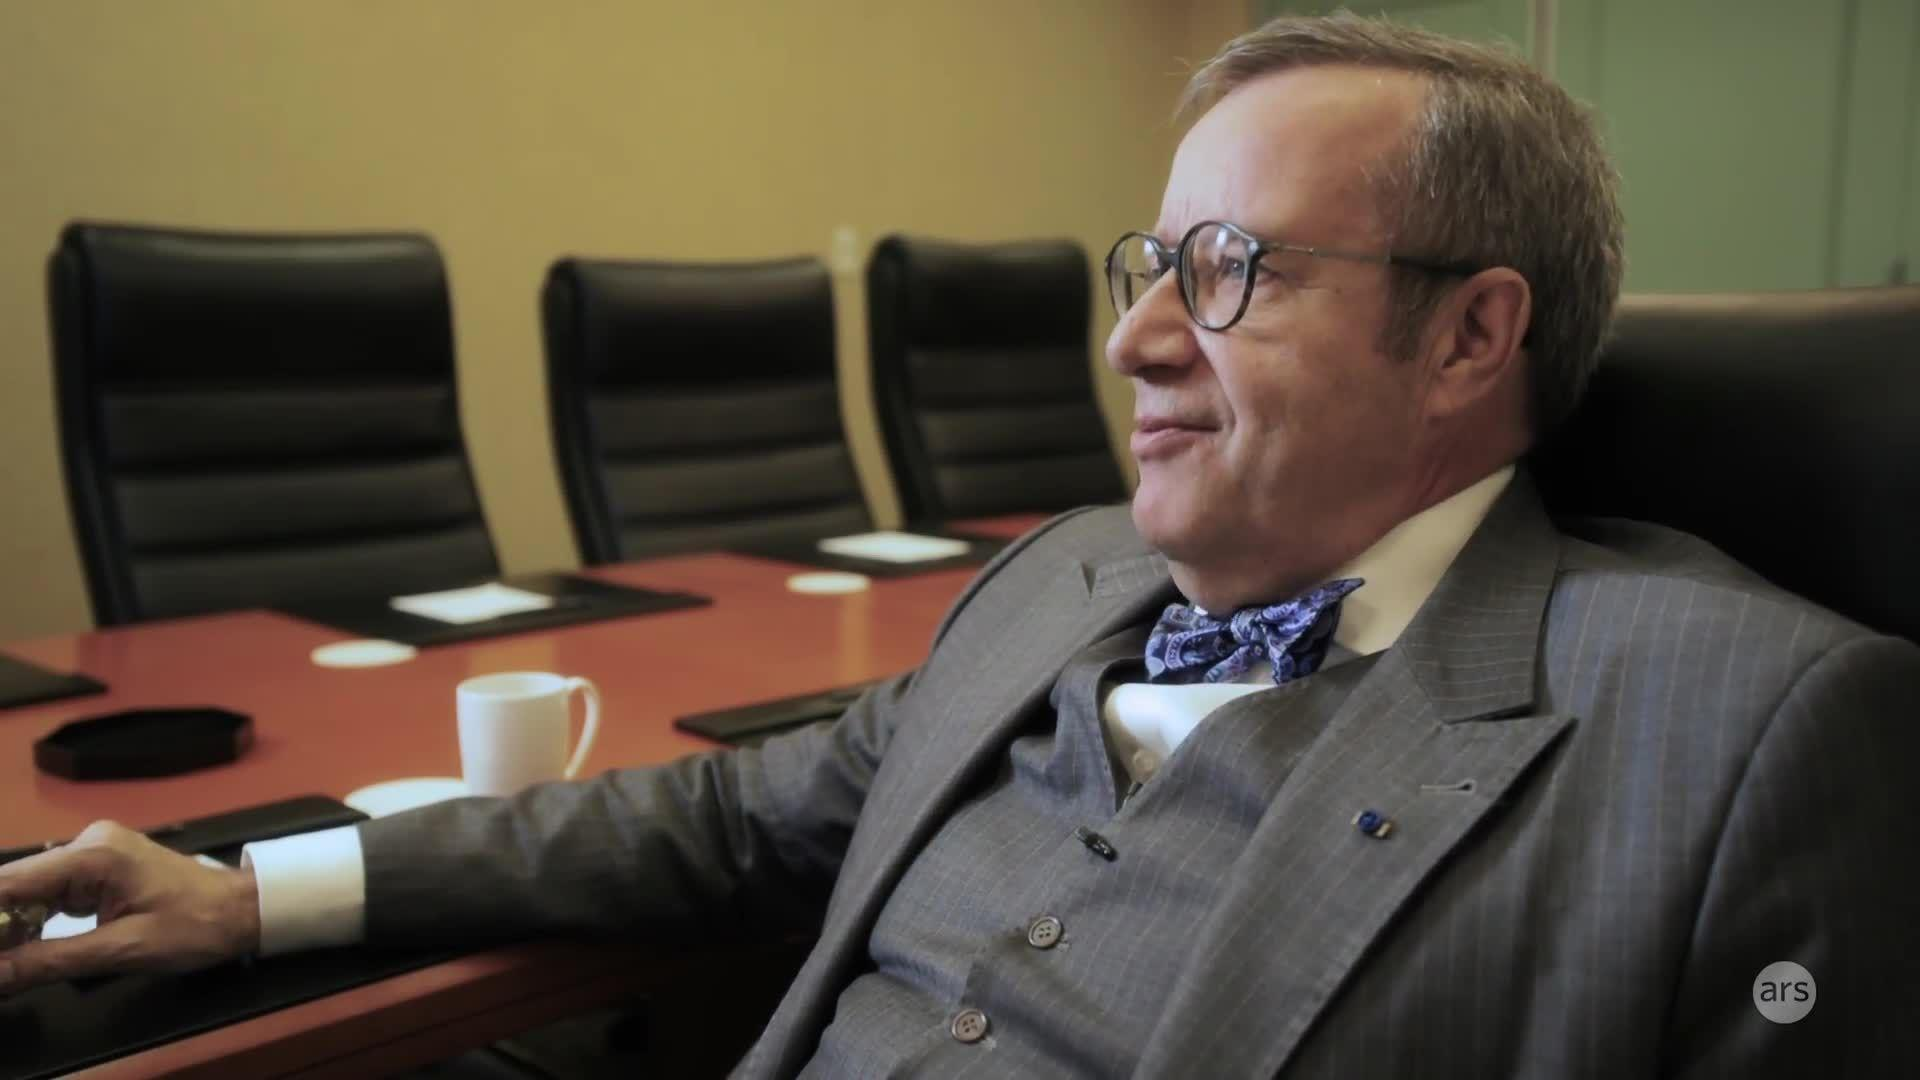 Ars talks e-residency and data sharing with Estonia's President